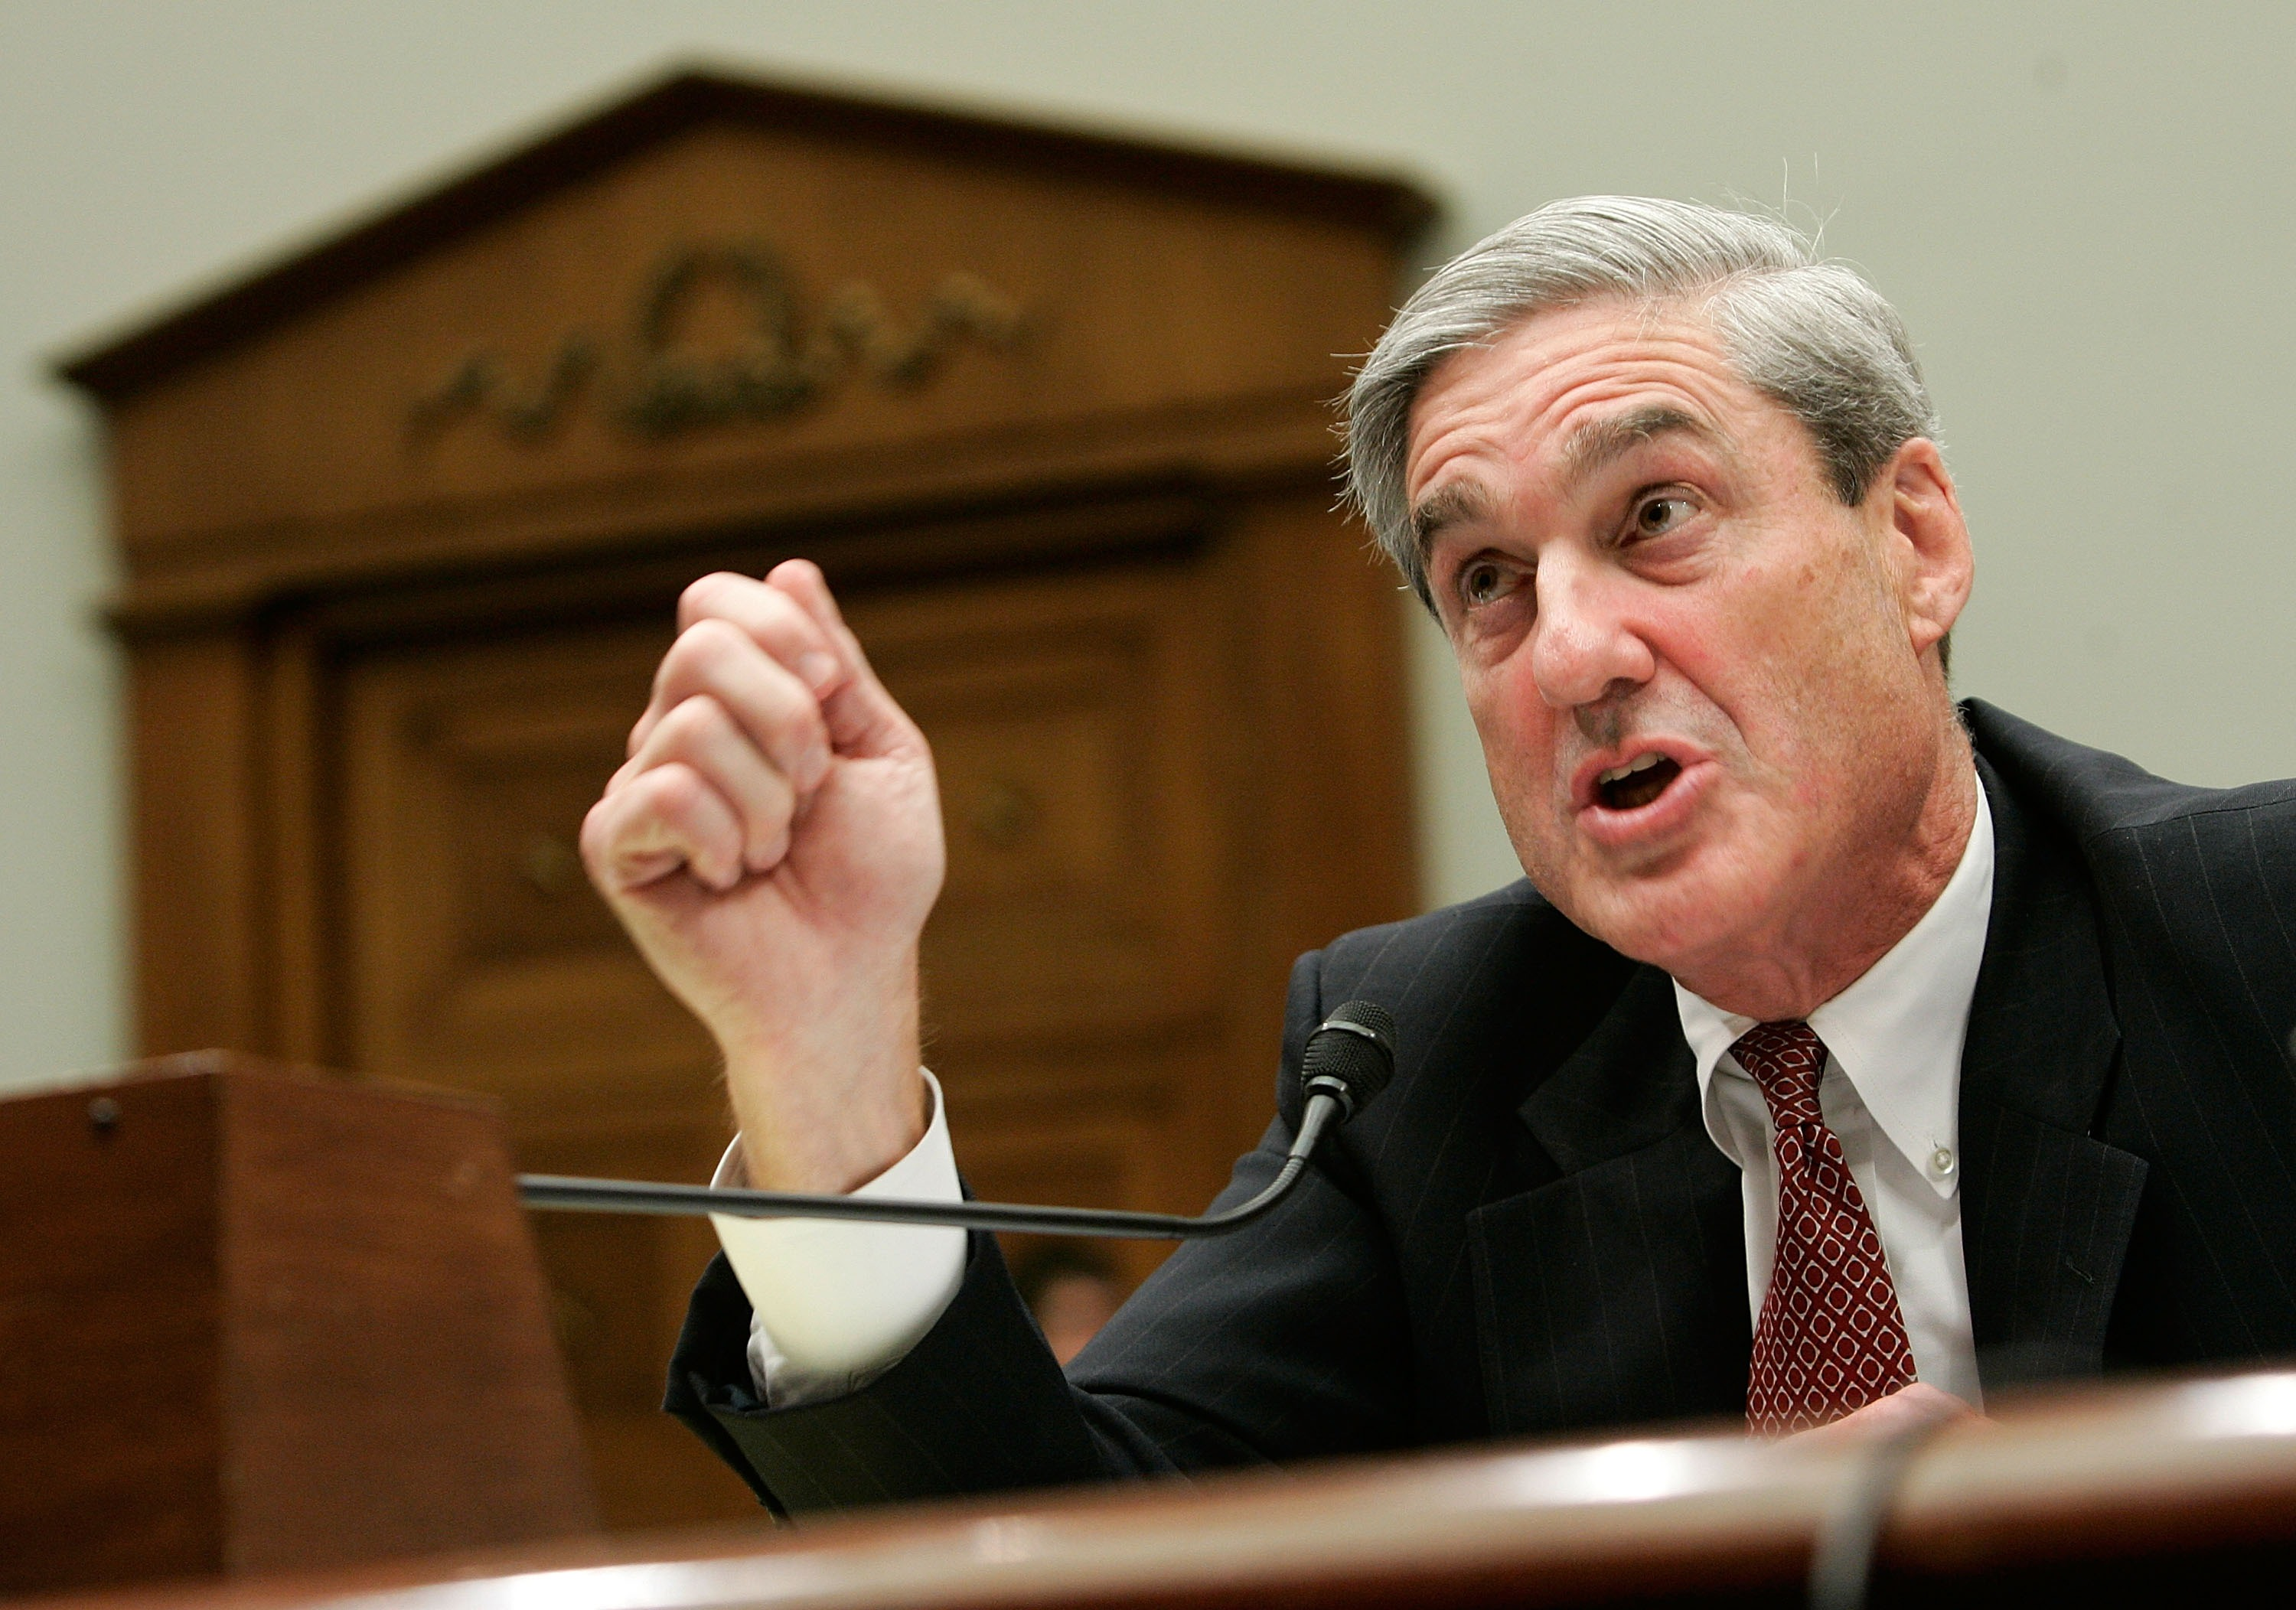 Special counsel Robert Mueller's congressional testimony is delayed by a week